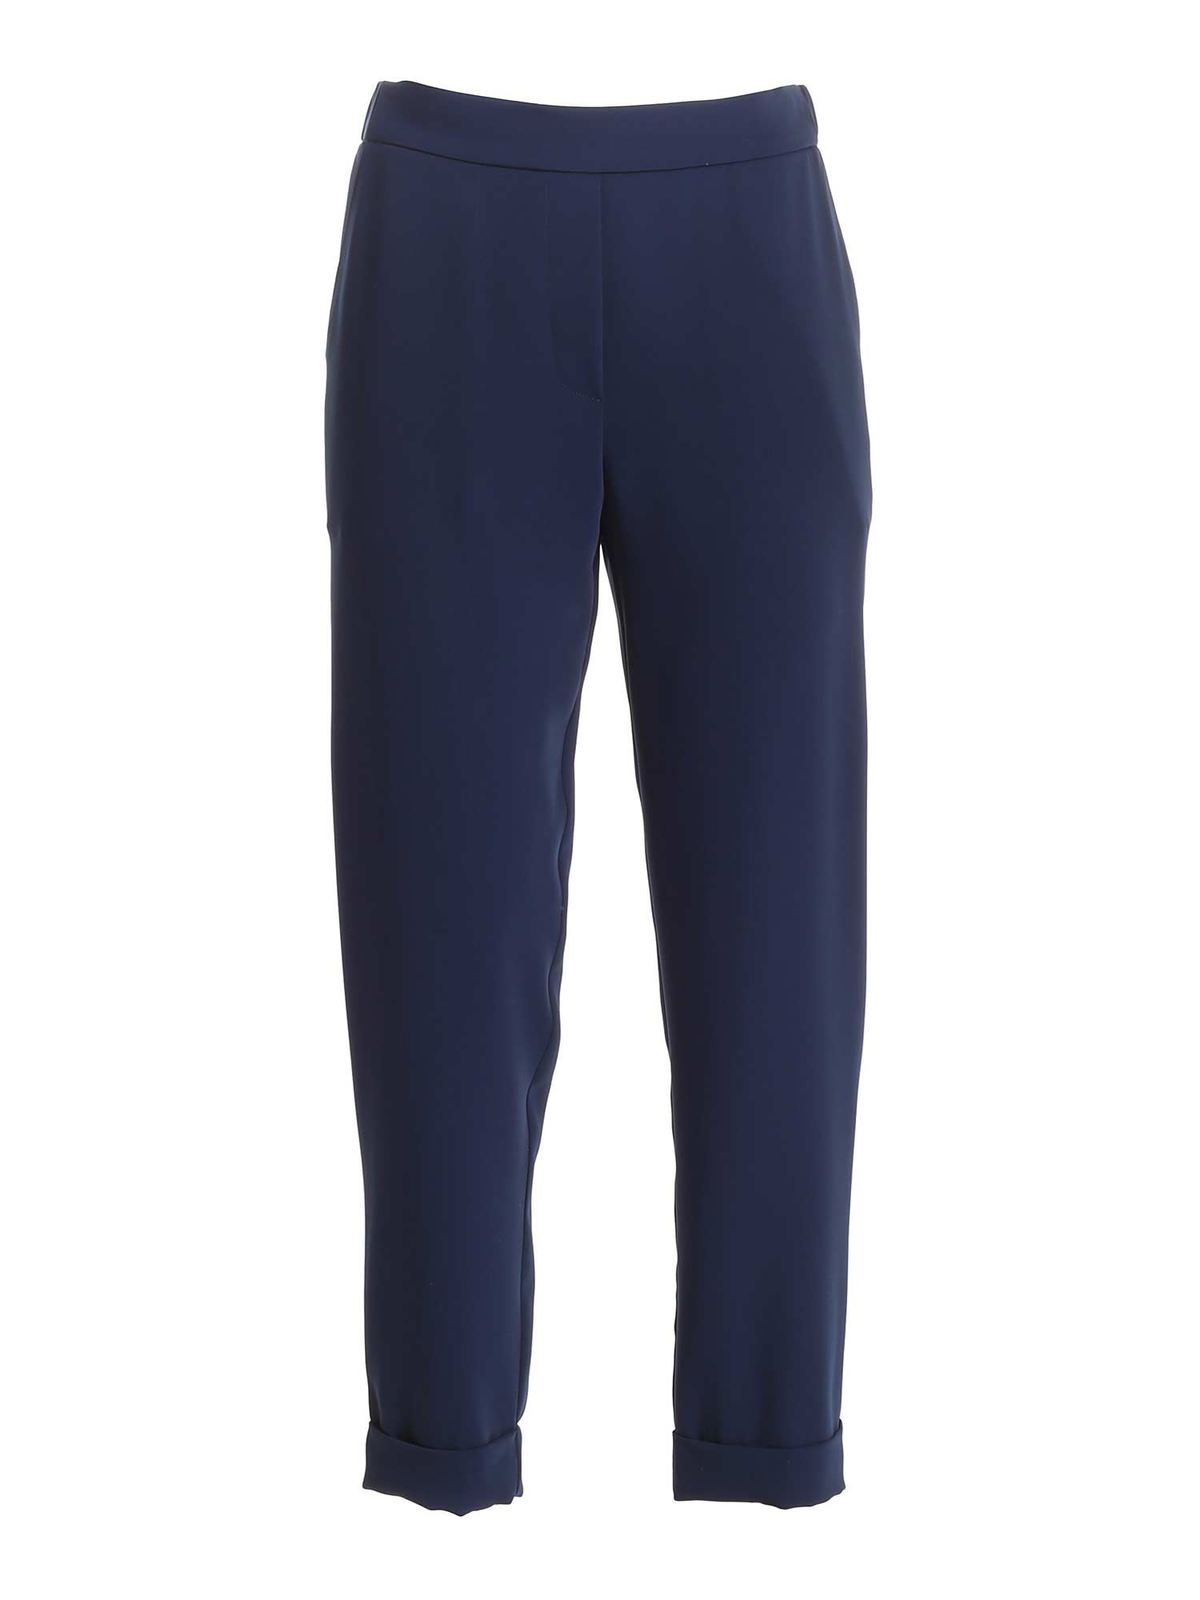 P.a.r.o.s.h. TURNED-UP HEM CADY PANTS IN BLUE